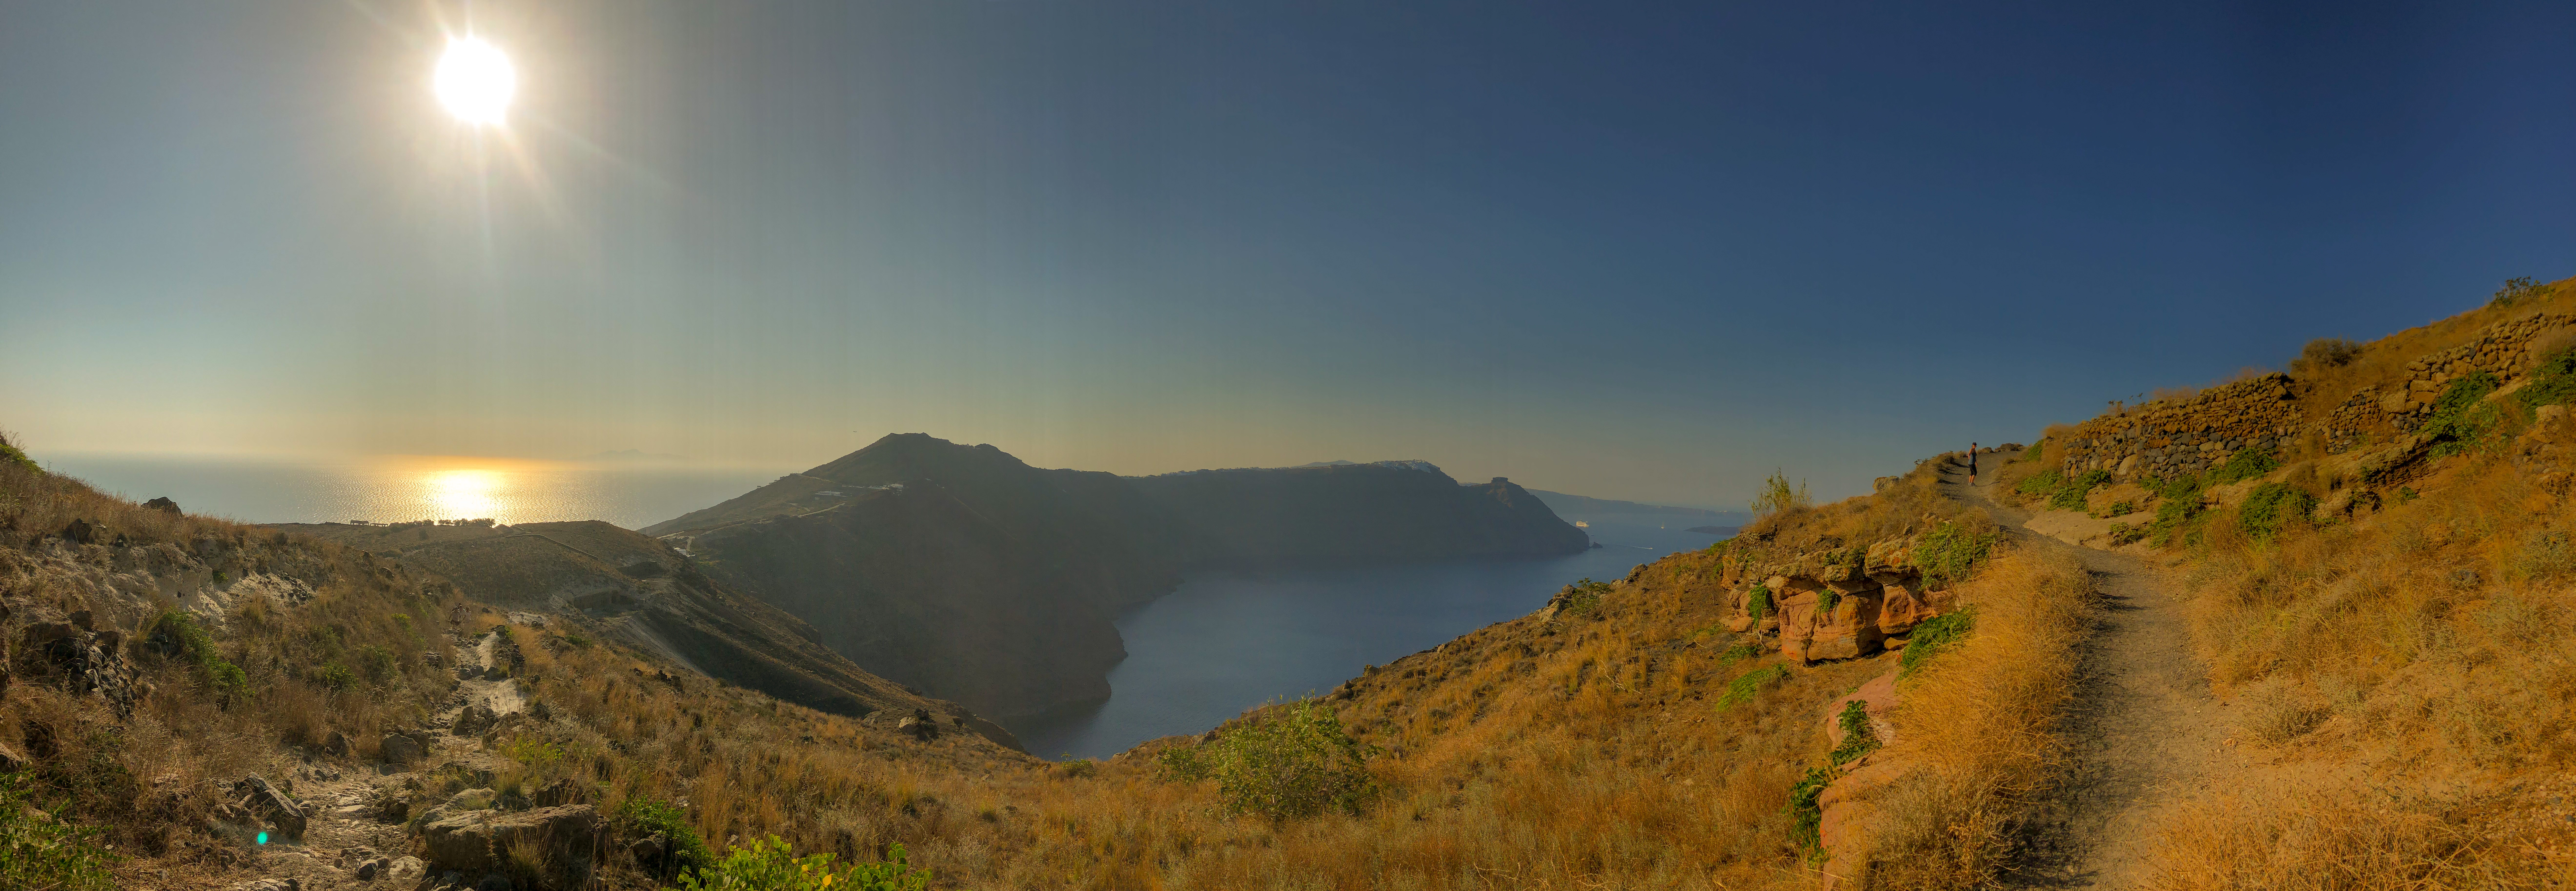 Morning view of the sun and Santorini island while on the Fira to Oia Hike.